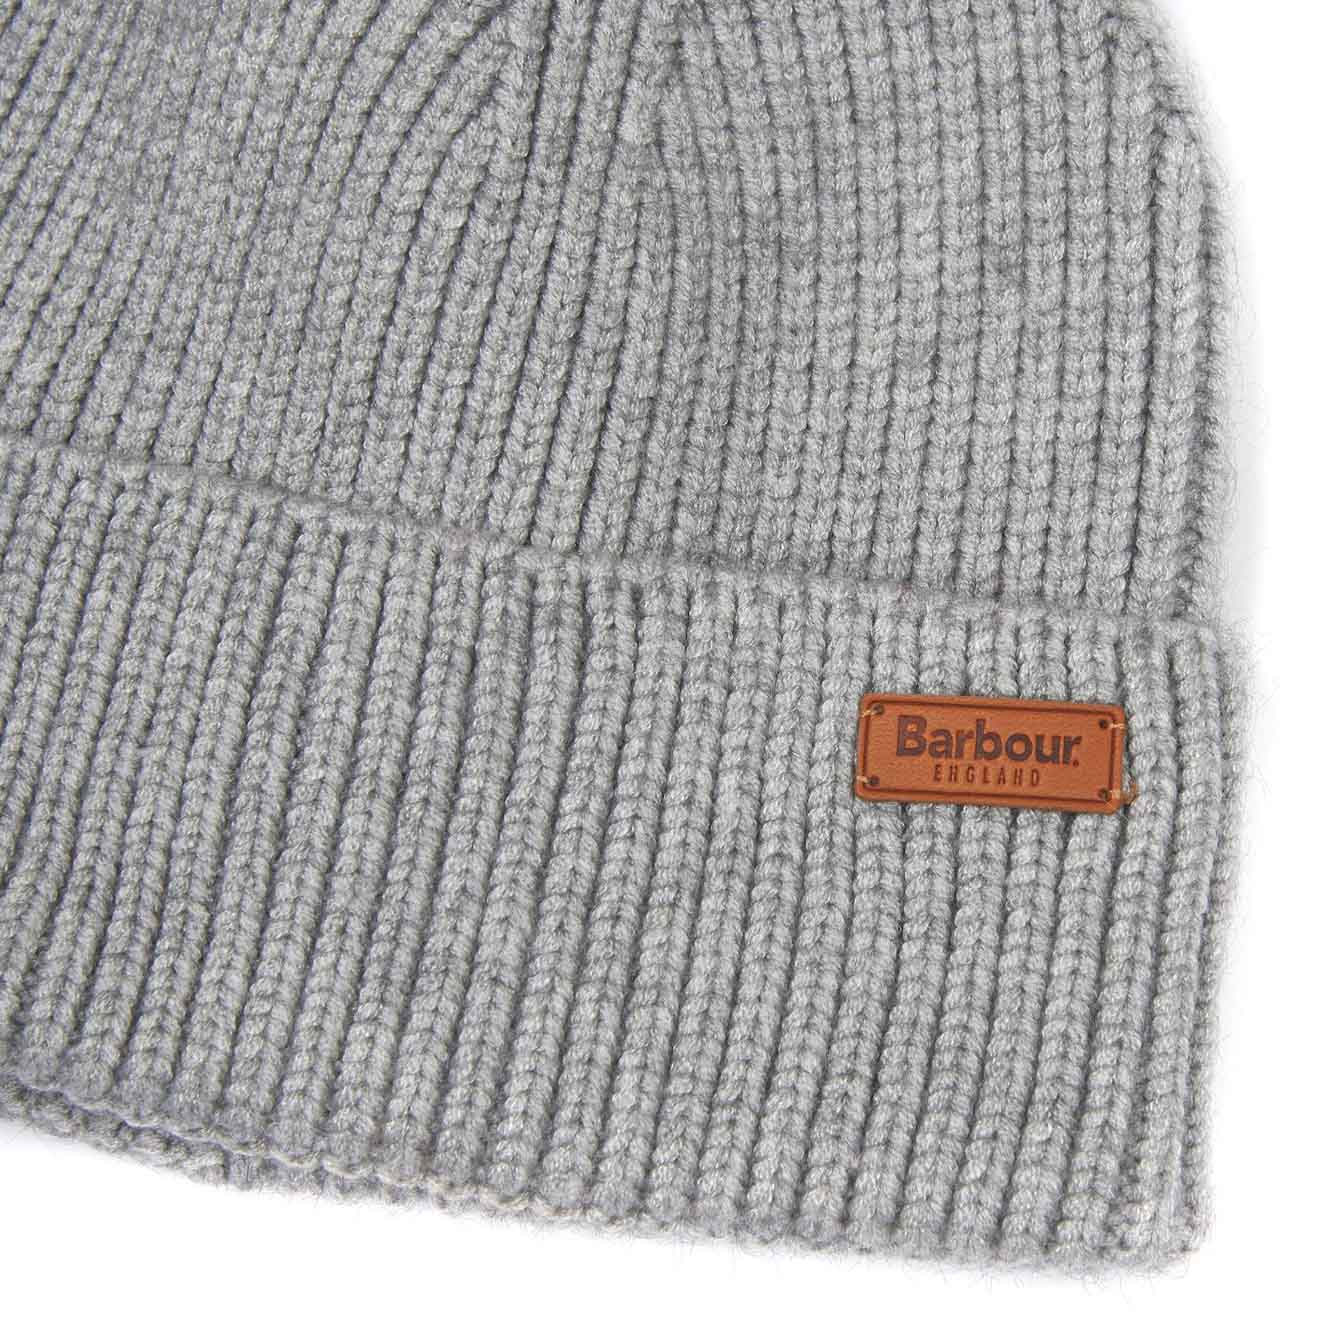 4c559cf0e0d Barbour womens dover pom beanie hat grey the sporting lodge jpg 1320x1320 Barbour  beanie hat